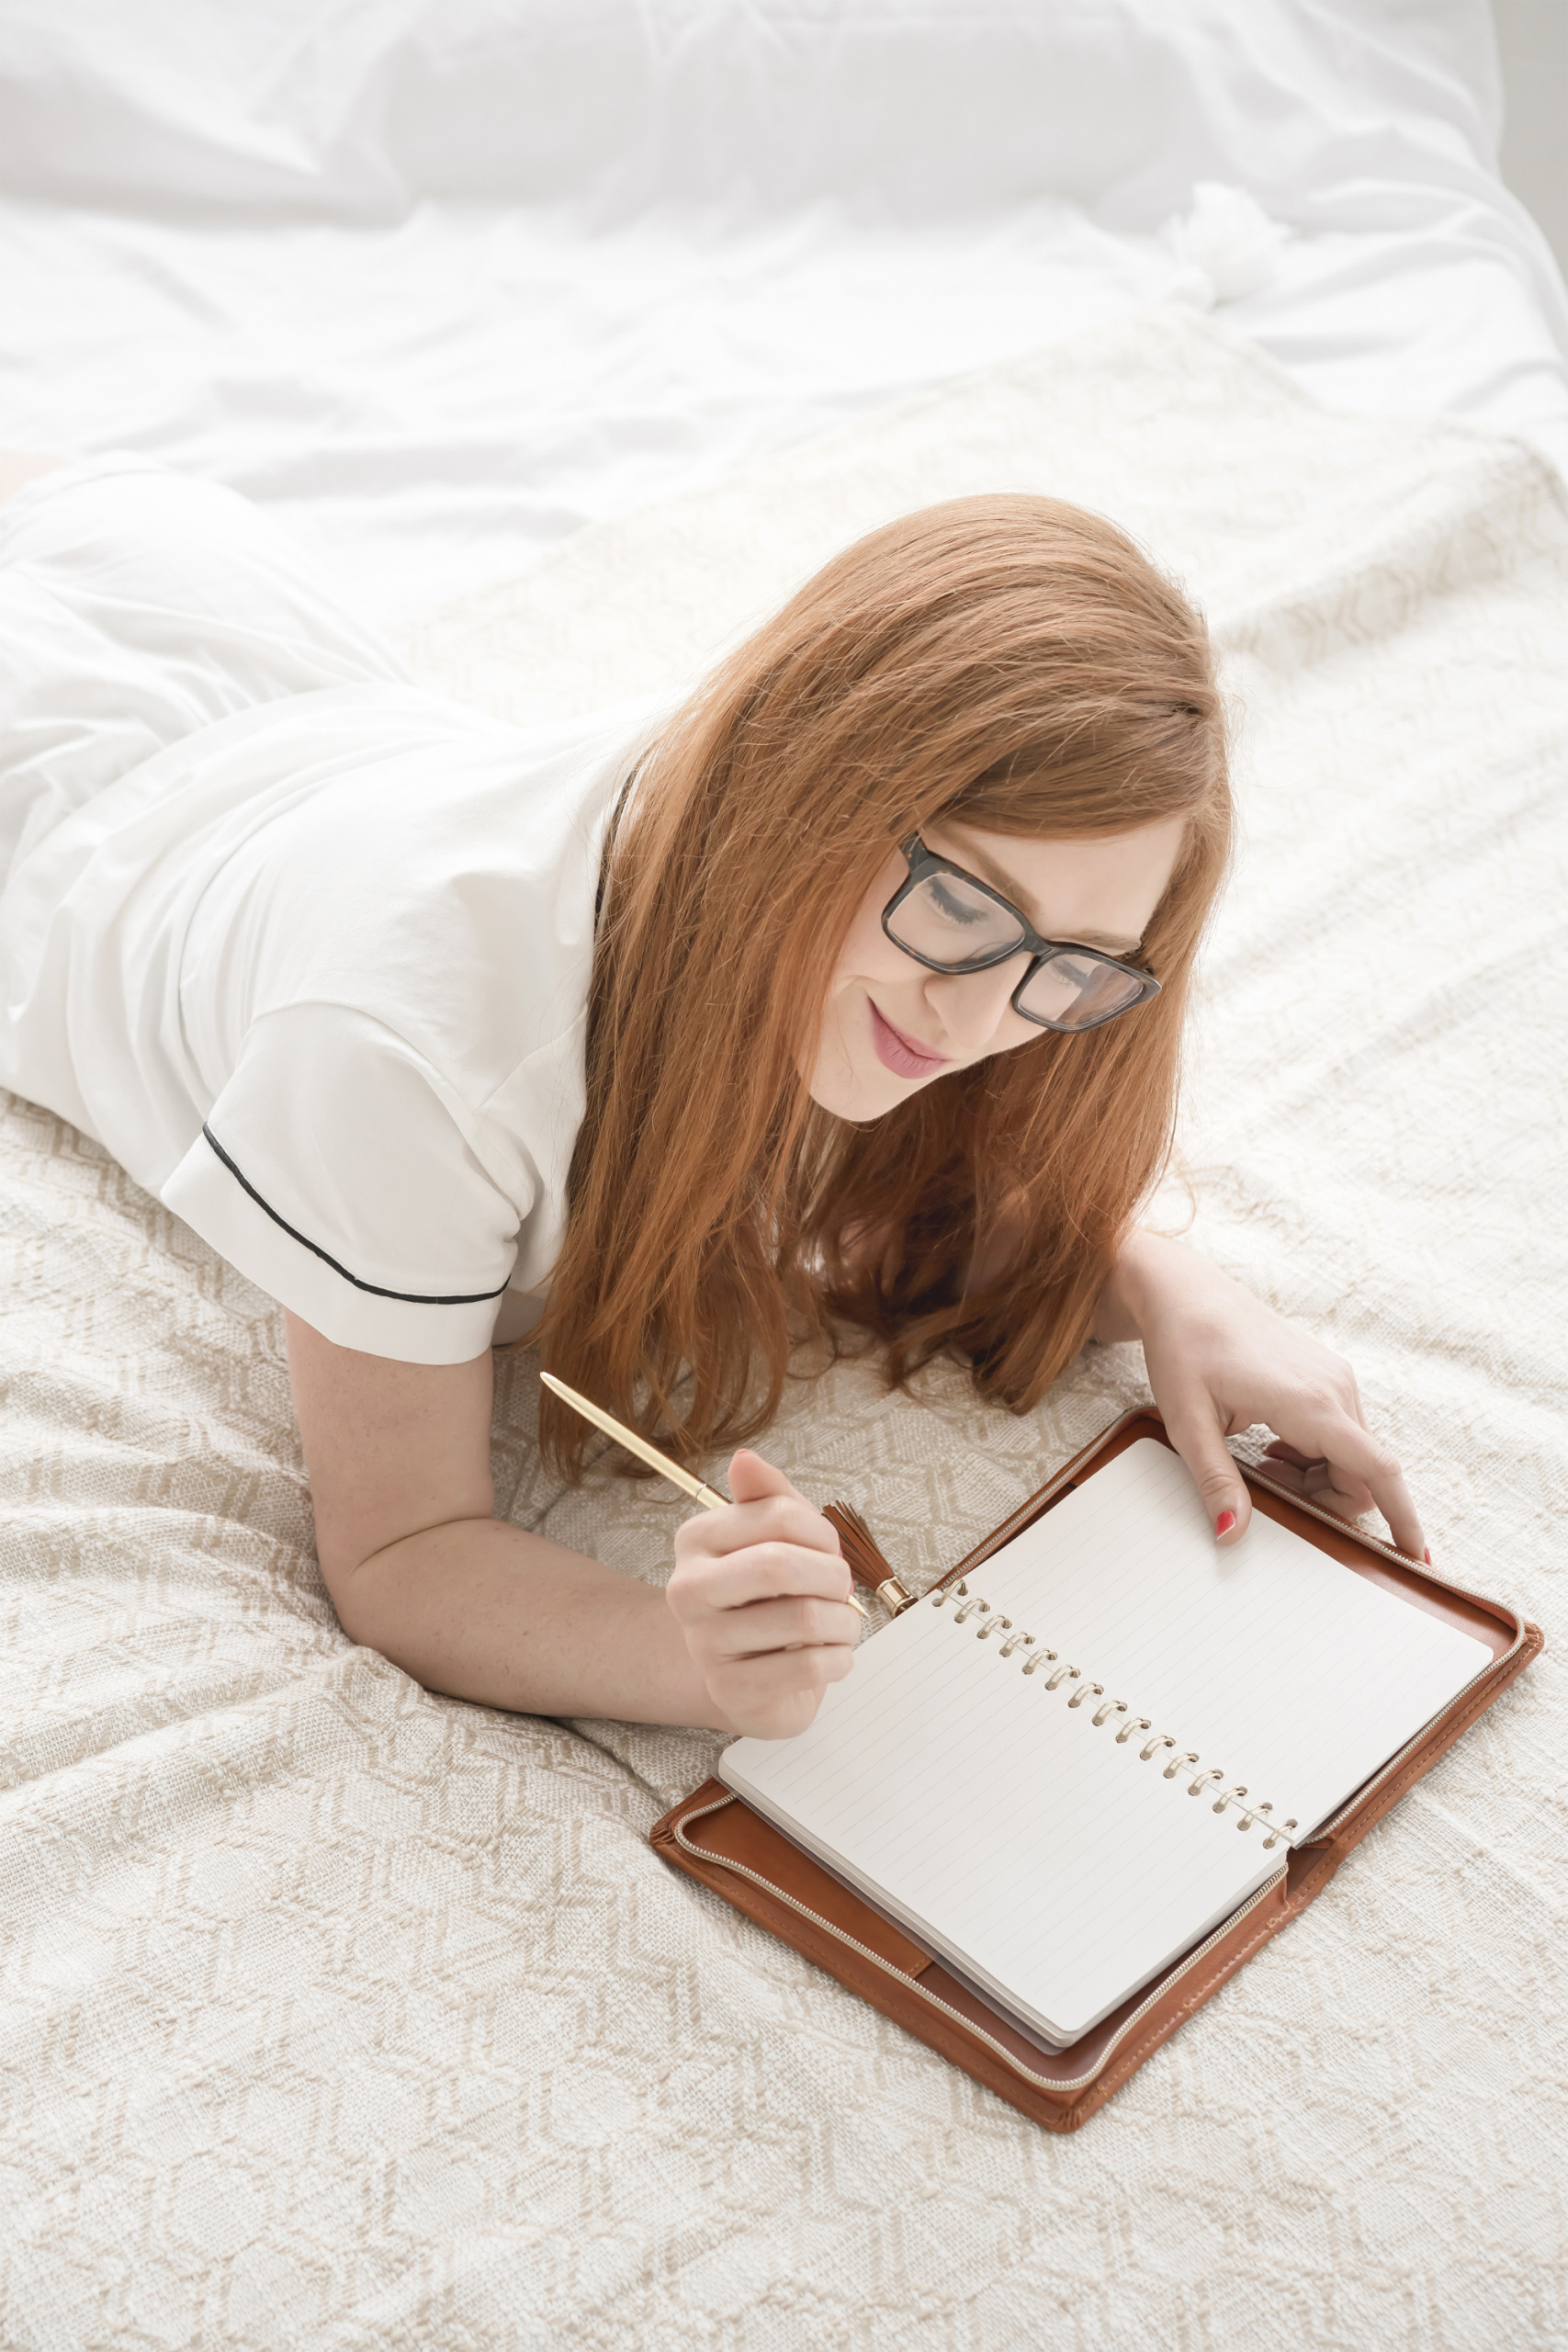 common menopause questions, Long auburn-haired woman journaling in bed